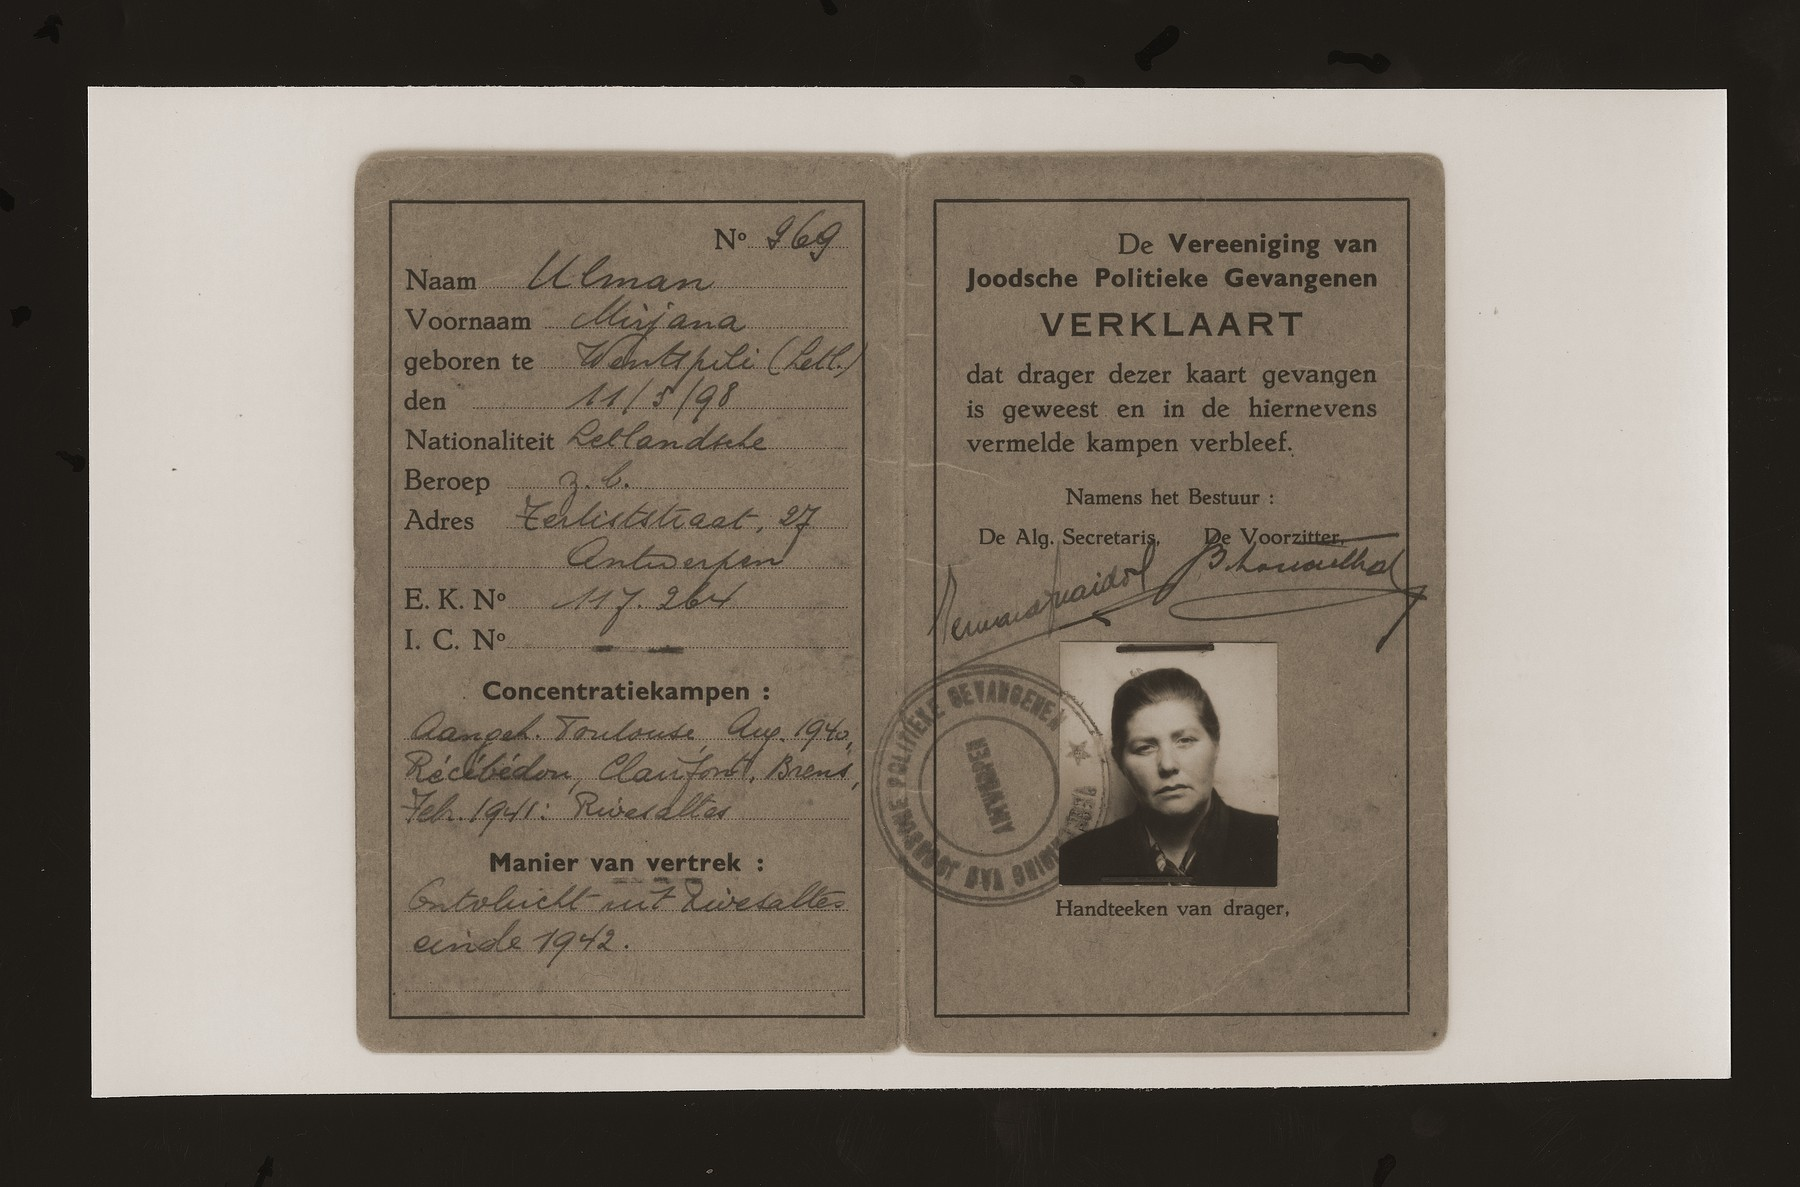 Identification card issued to Mirjana Ulman Zalc by the Organization of [former] Jewish Political Prisoners [Vereeniging van Joodsche Politieke Gevangenen] in postwar Belgium, certifying that he is a concentration camp survivor.